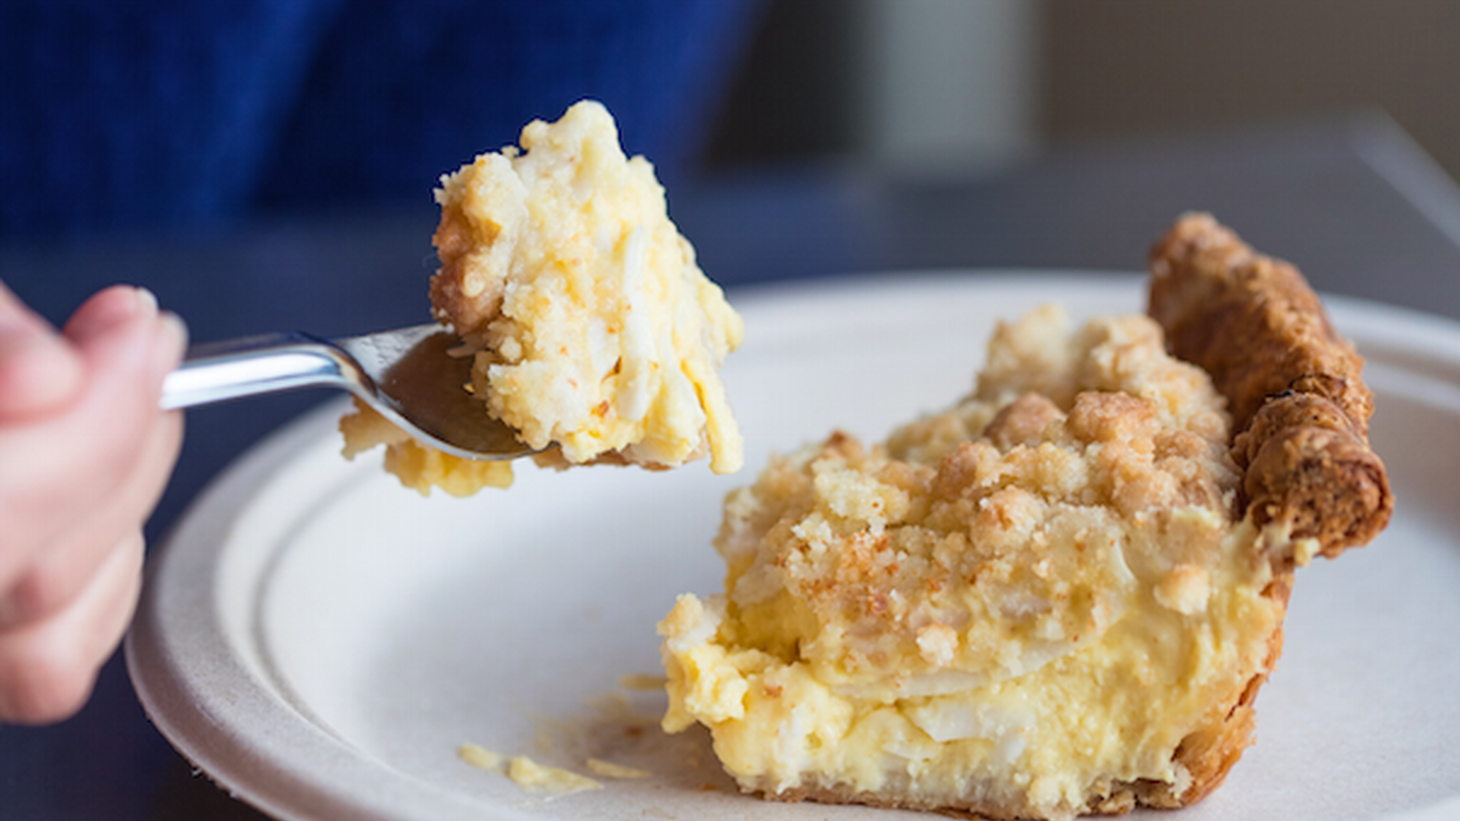 What's the best slice of pie in LA? Pie Contest judge Isa Fabro and reporter Abbie Fentress Swanson are on the hunt. Rhubarb is a favorite pie filling, but its sweetness isn't always easy to coax out. Jonathan Gold reviews Native in Santa Monica.